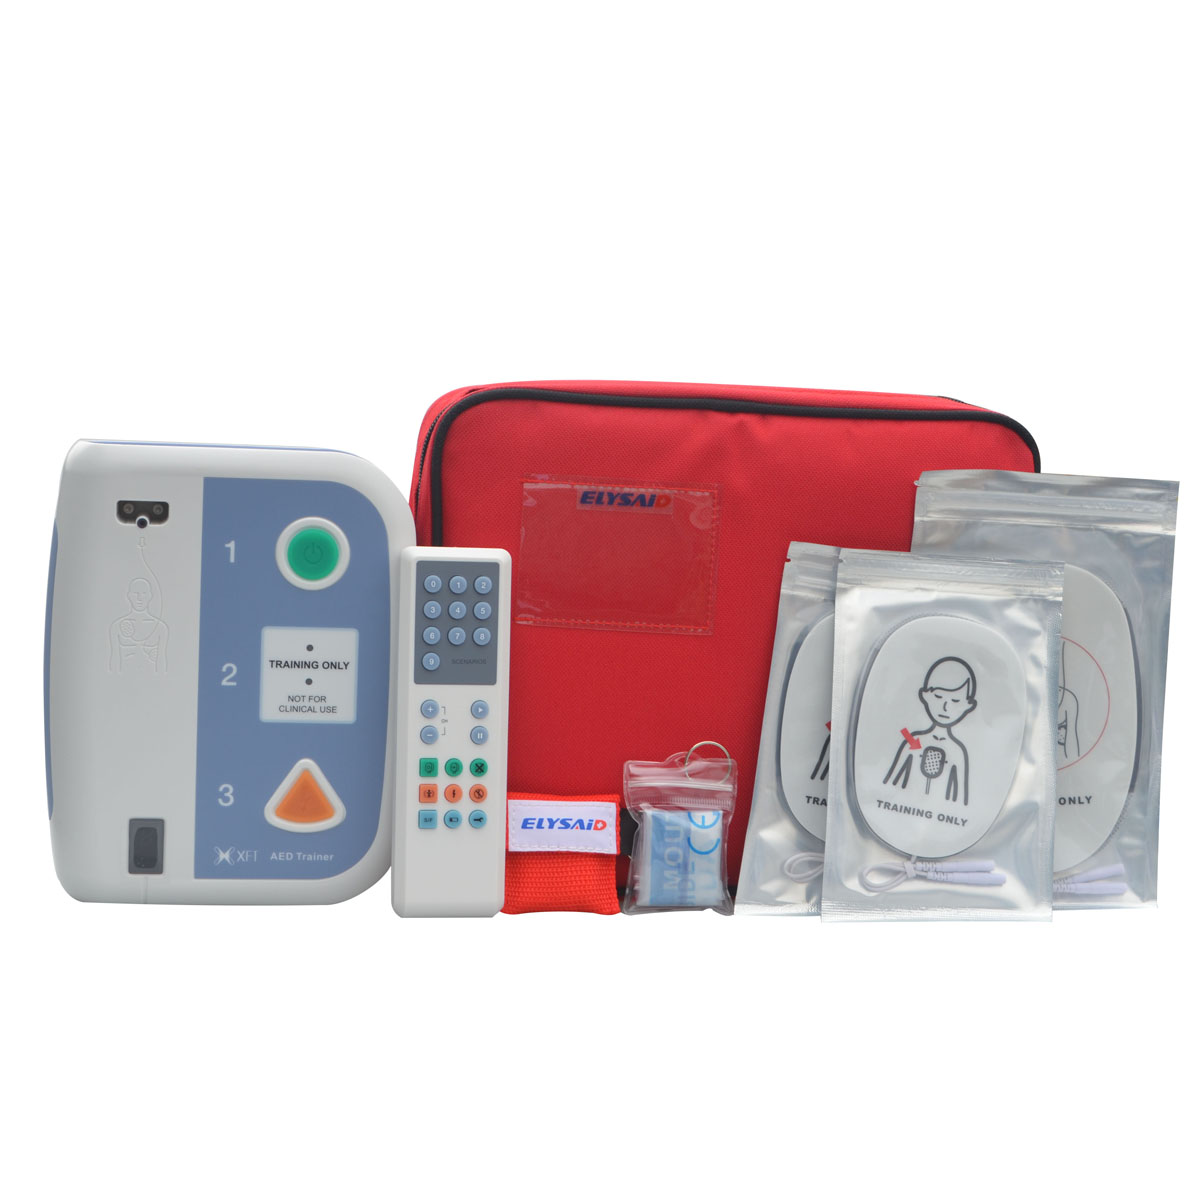 Elysaid 120C AED Trainer Automated External Defibrillator Emergency CPR Training Teaching First Aid Device 2pcs CPR